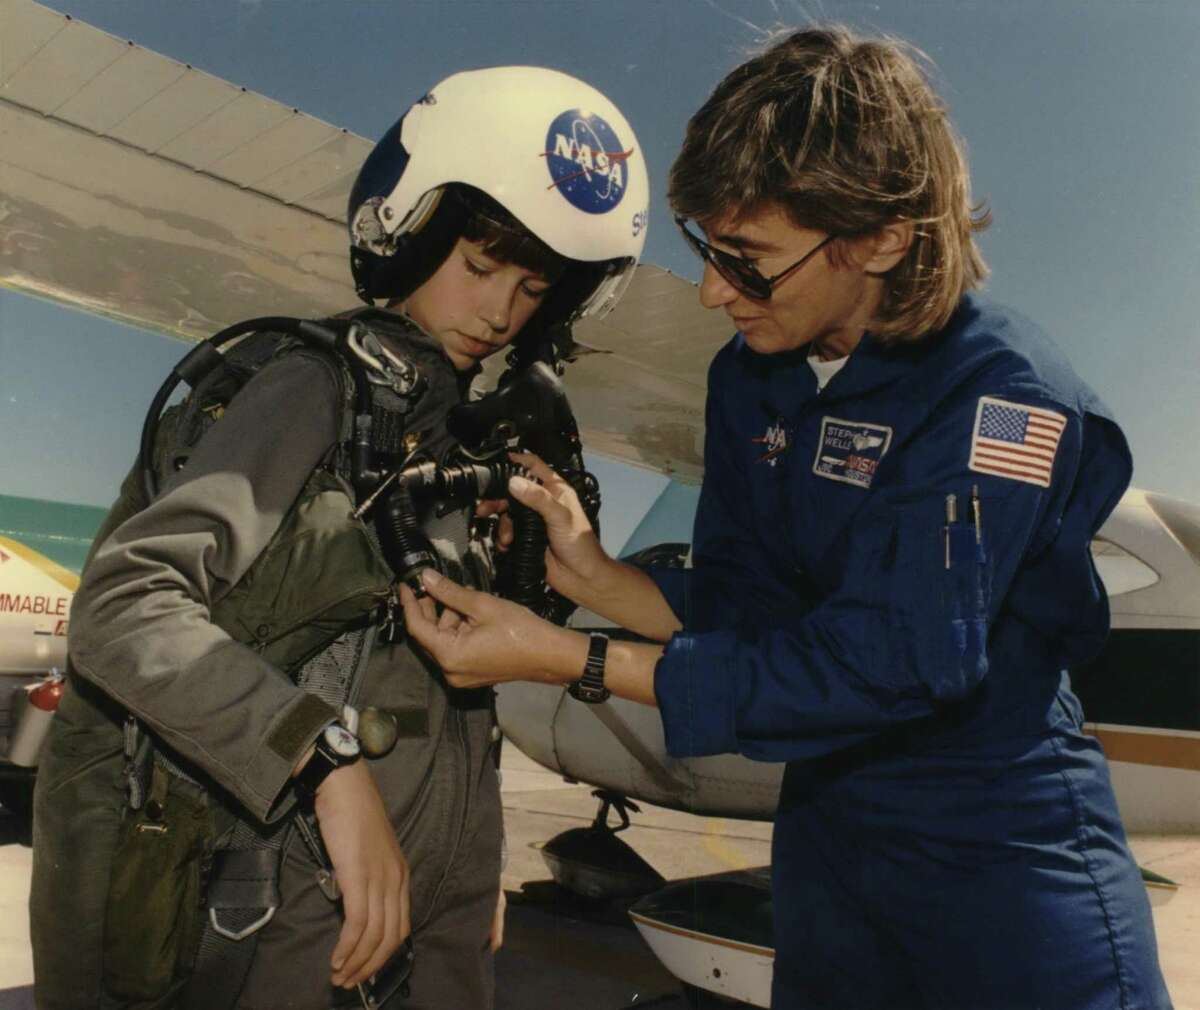 In this 1993 photo from the Houston Post archives, eleven-year-old Victoria Van Meter had one more milestone to complete after finishing her record-setting flight across the country on Sept. 23, 1993. Flying her plane to Houston's Ellington Field she was greeted by NASA pilot Stephanie Wells (R), who let her try on her flight helmet and parachute before touring Johnson Space Center. Van Meter dreamed of becoming an astronaut when she grew up. She died in 2008 at age 26.